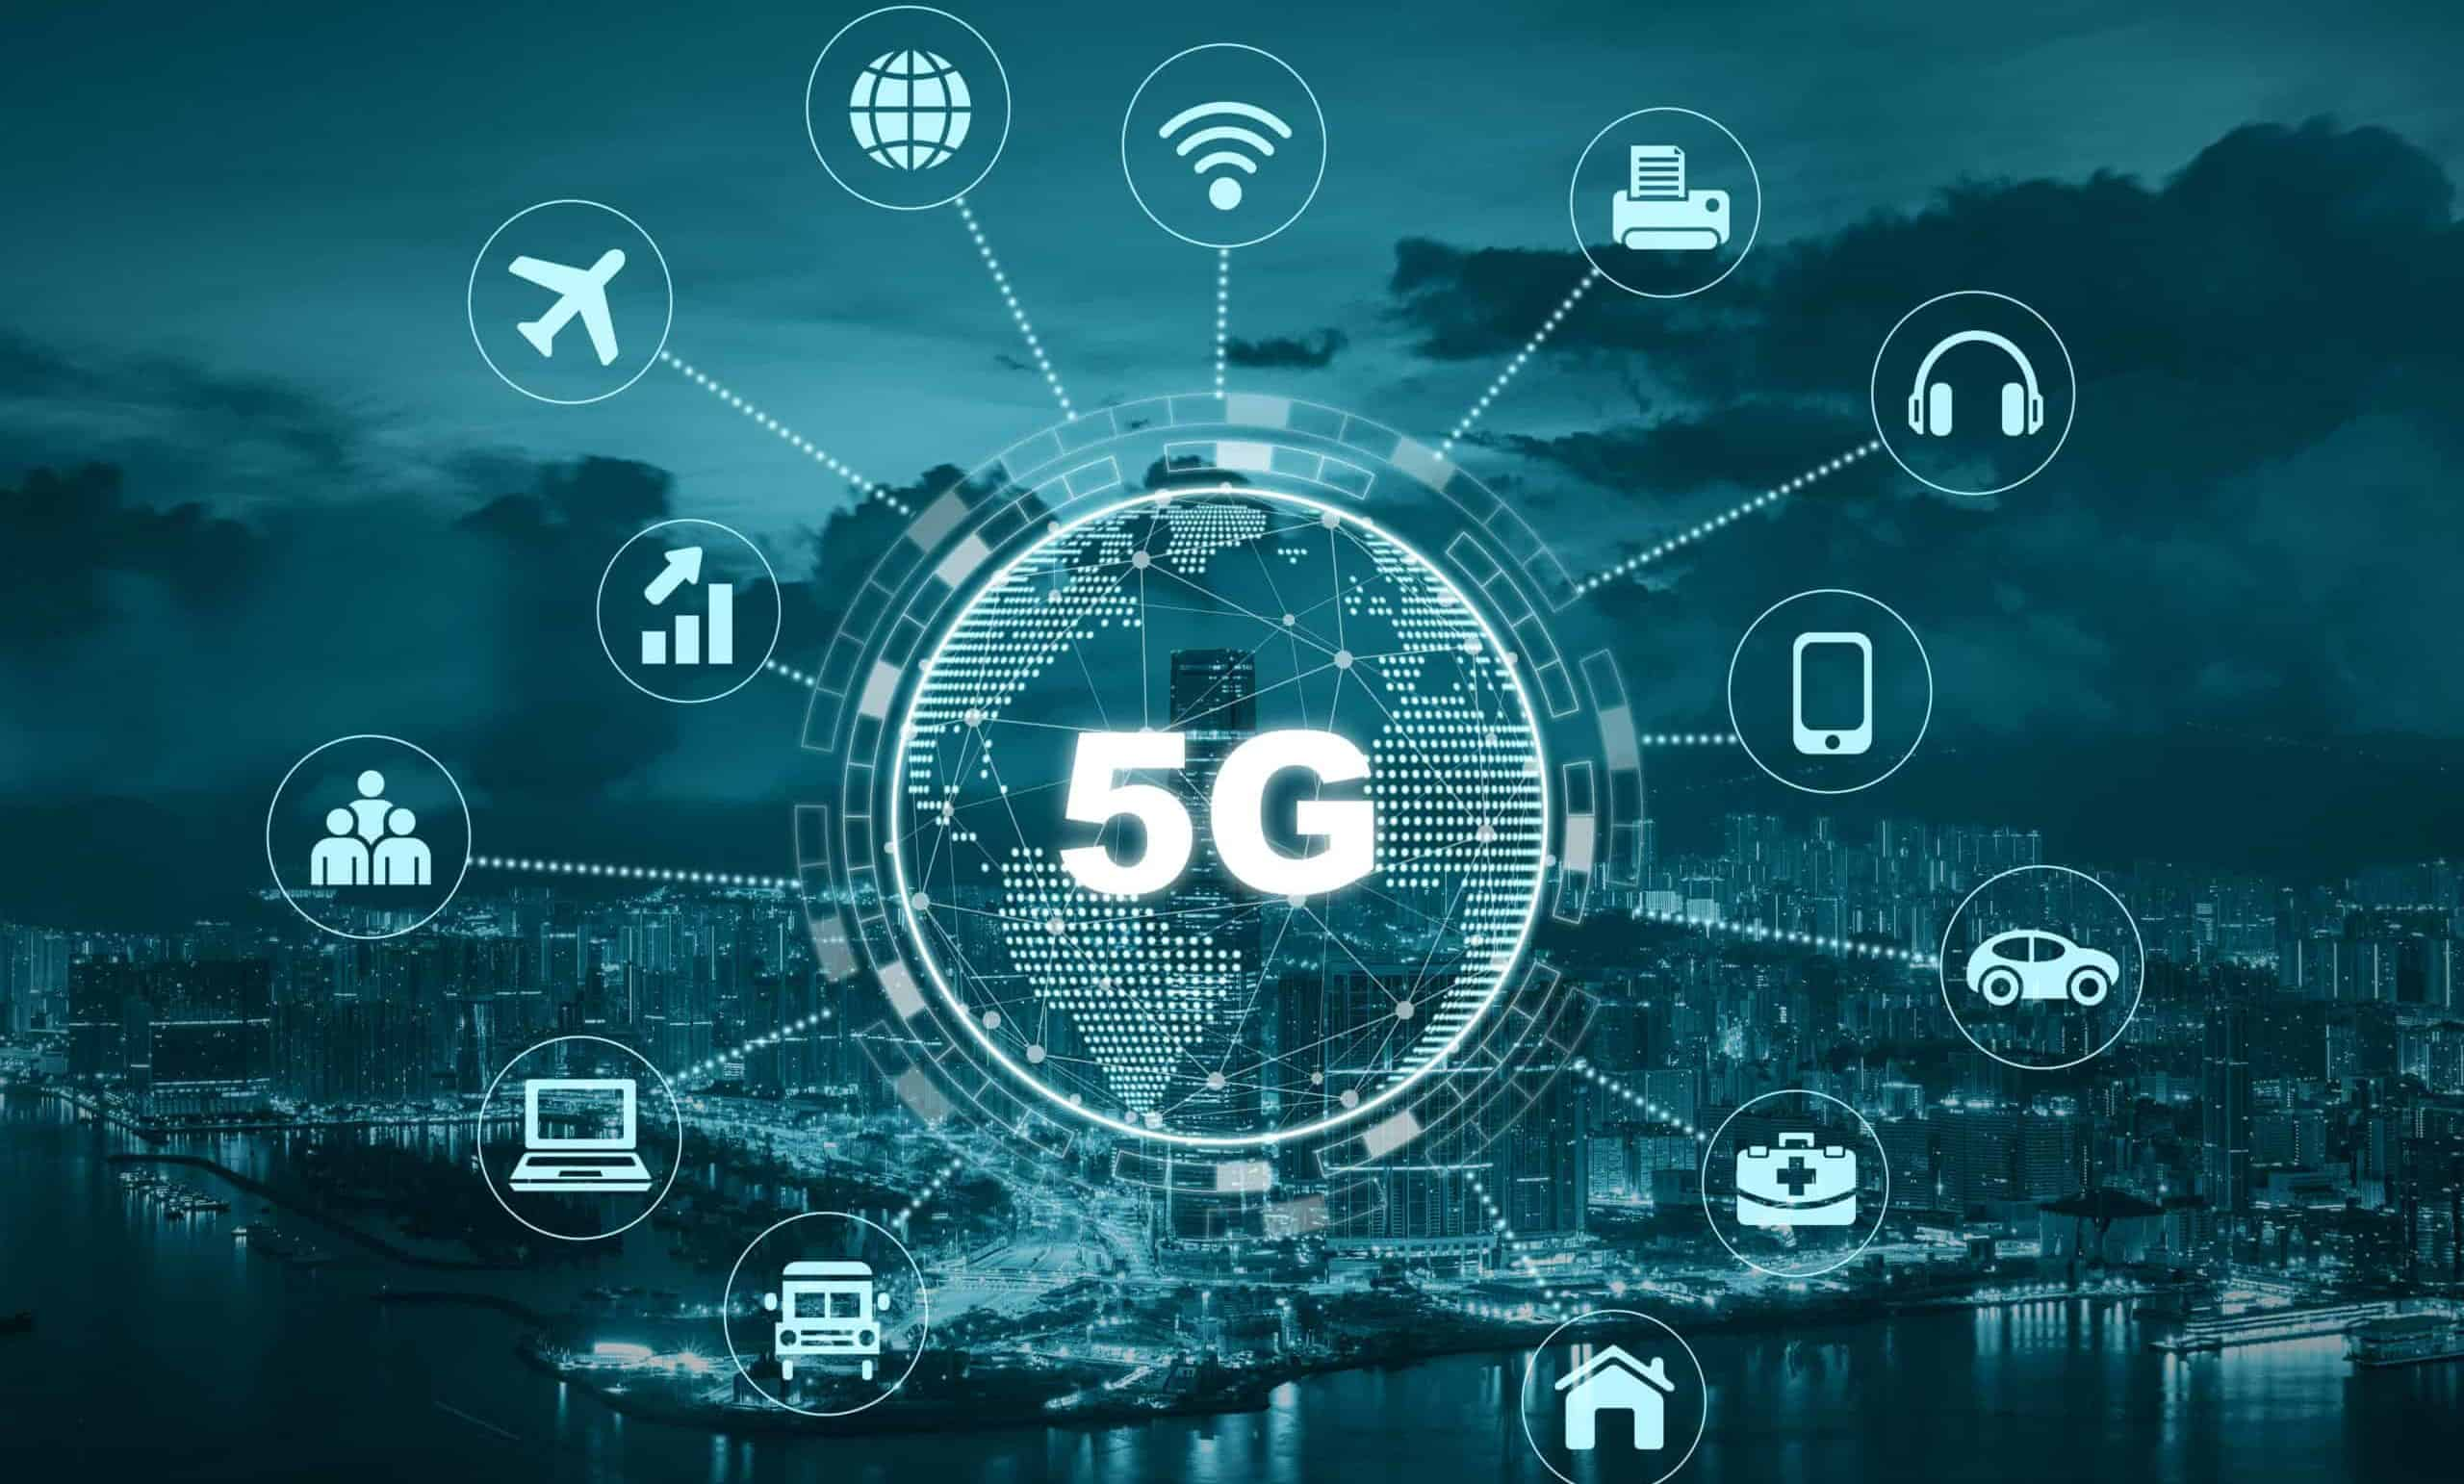 IoT empowered by 5G